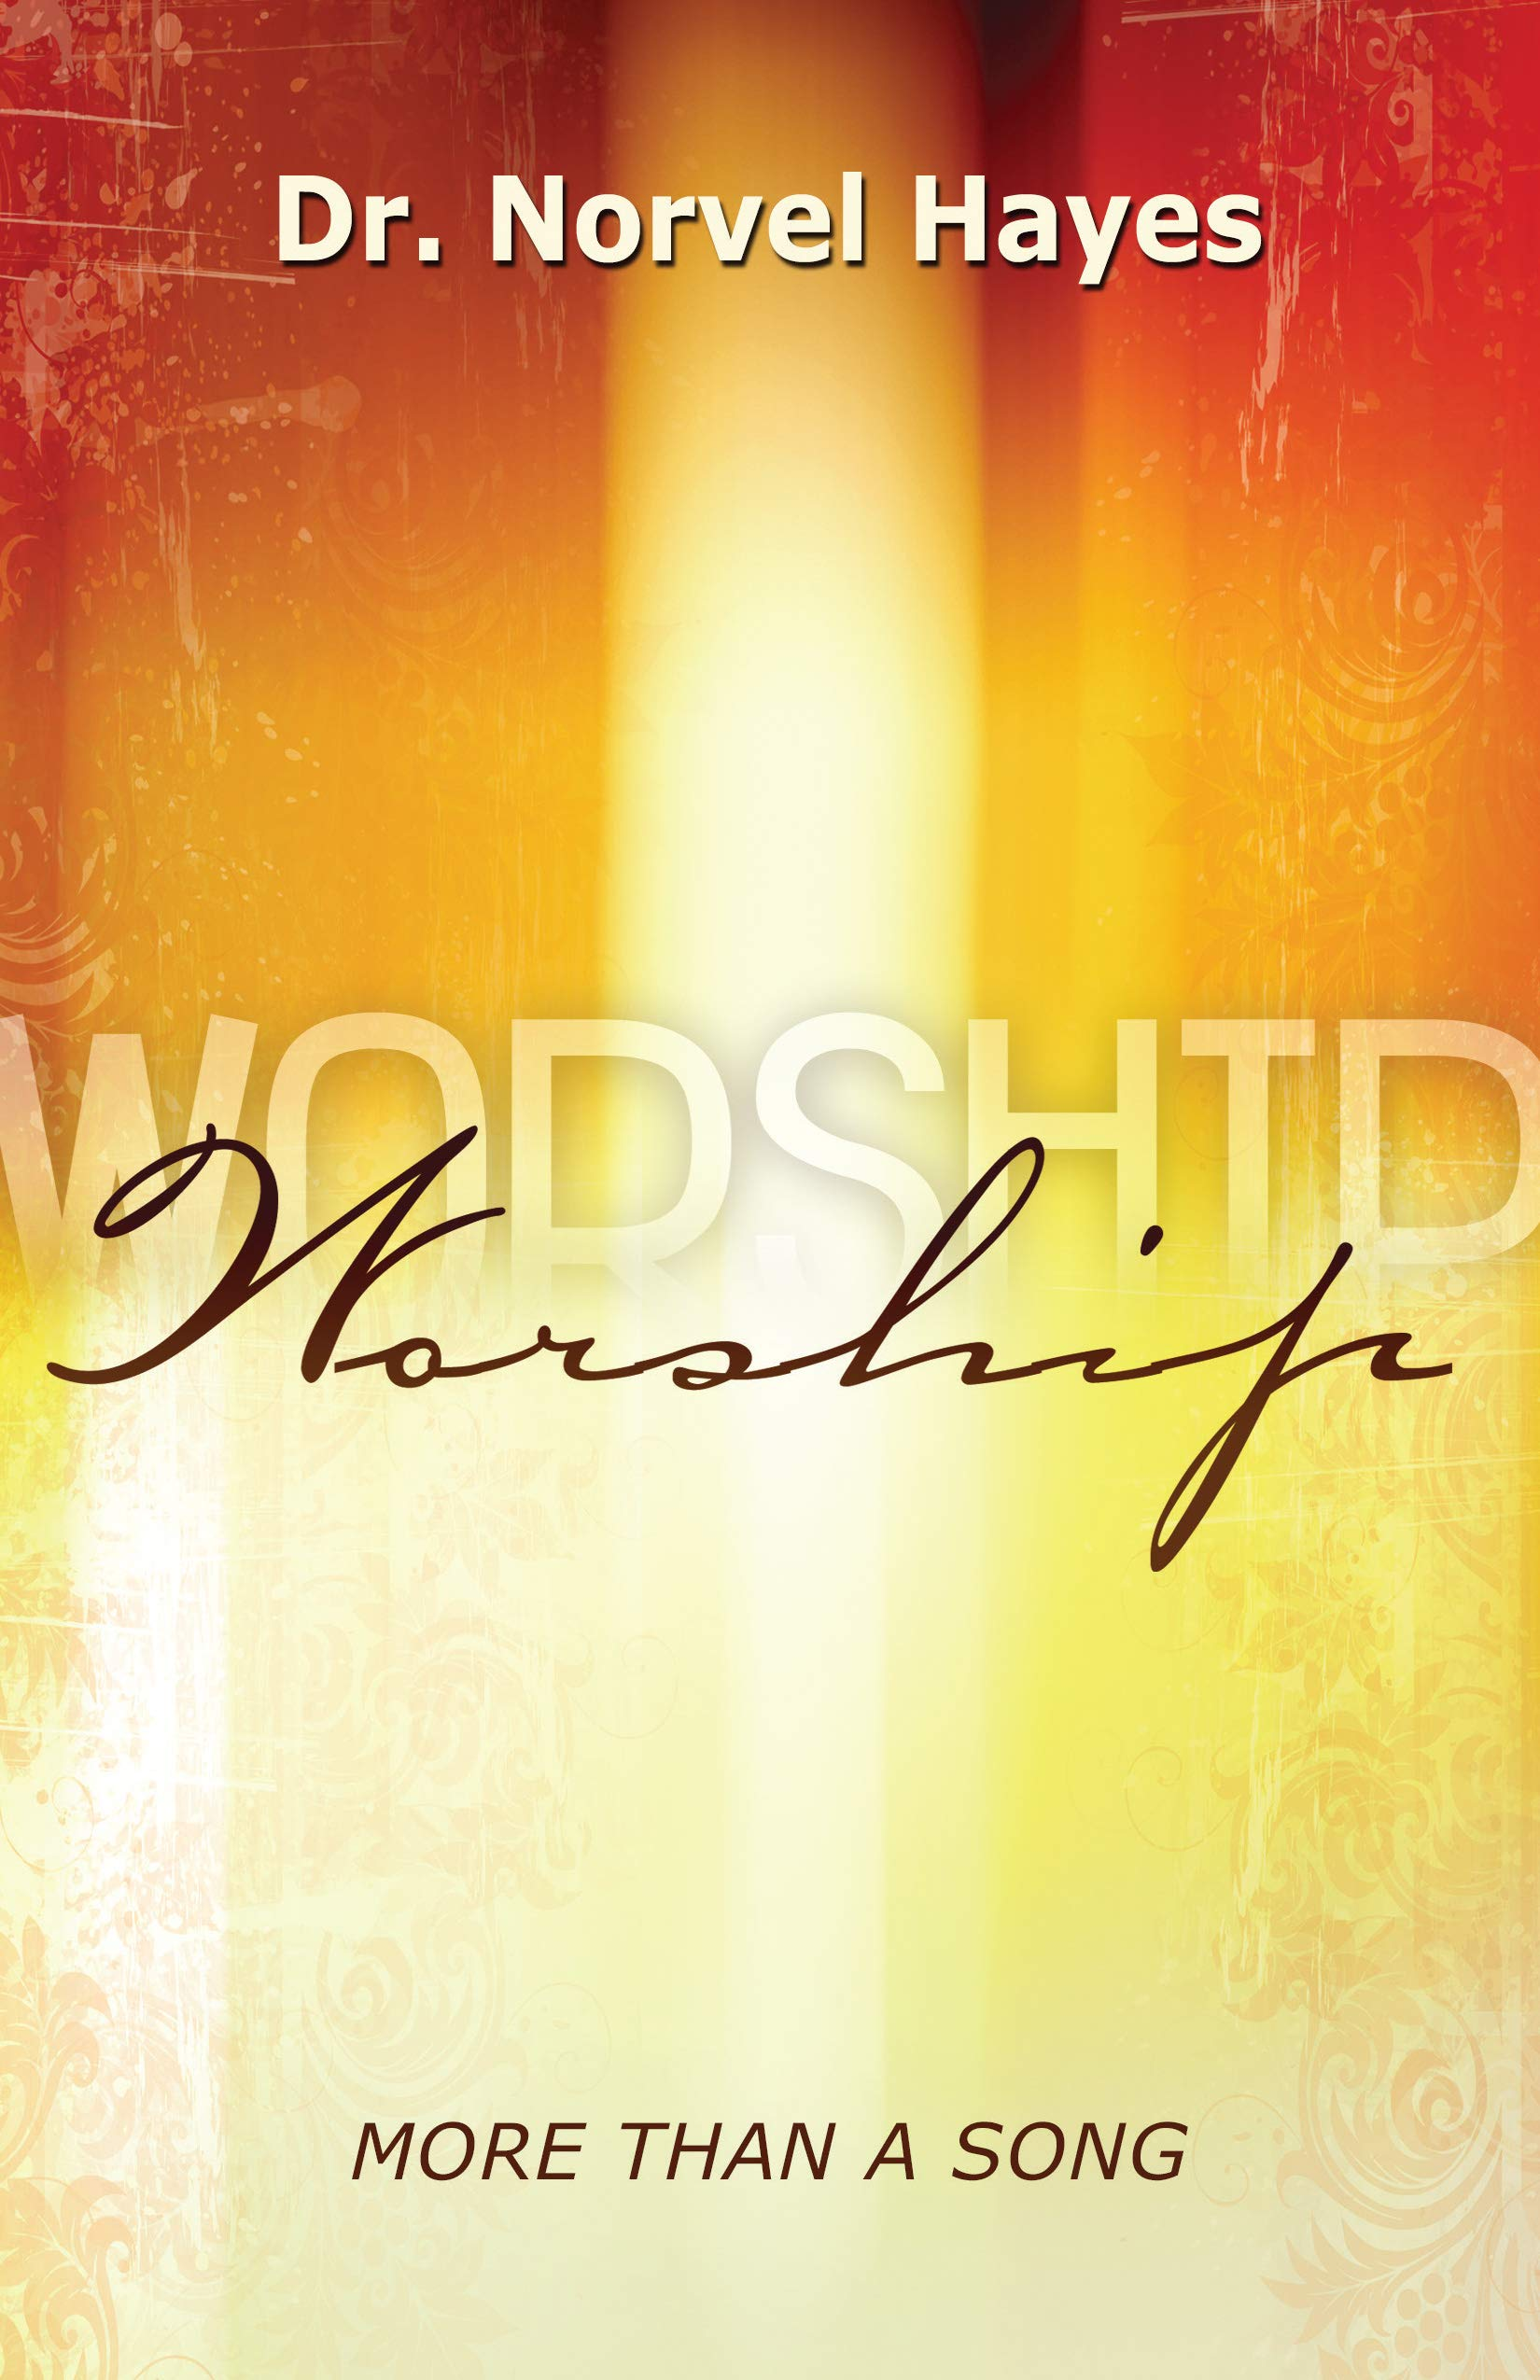 Worship: More Than a Song: Norvel Hayes: 9781606830031: Amazon.com: Books